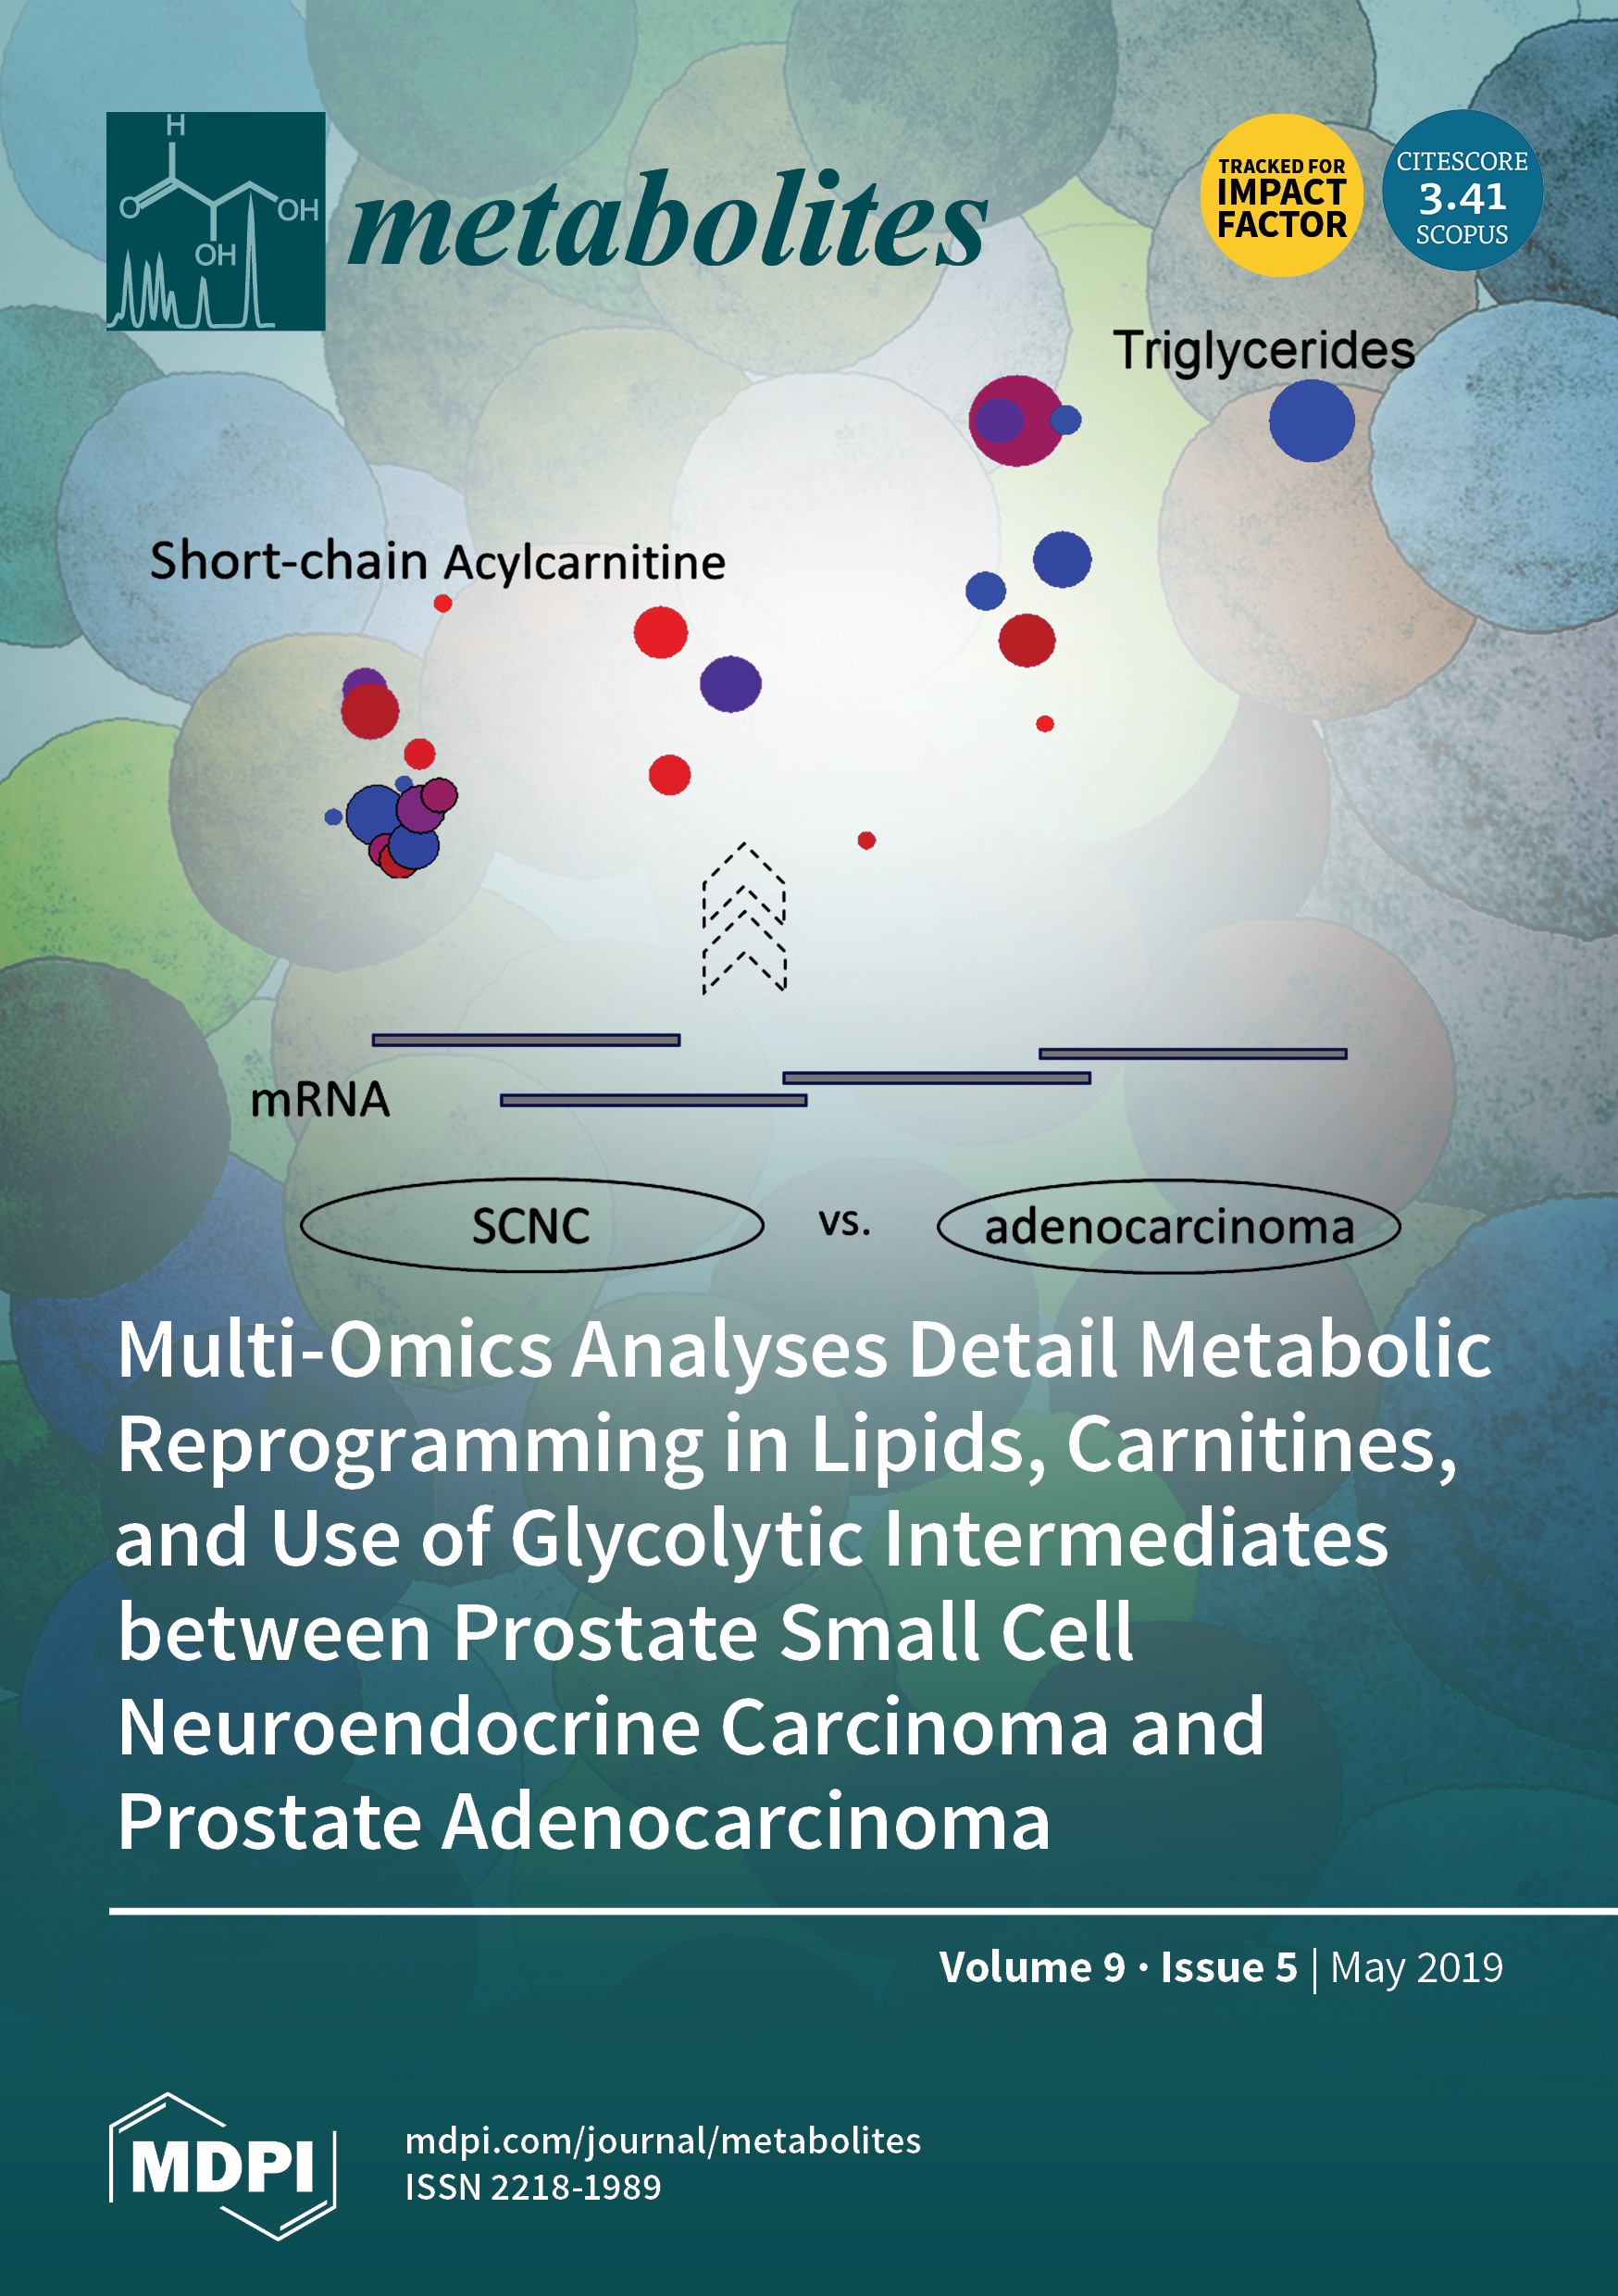 Metabolites | May 2019 - Browse Articles